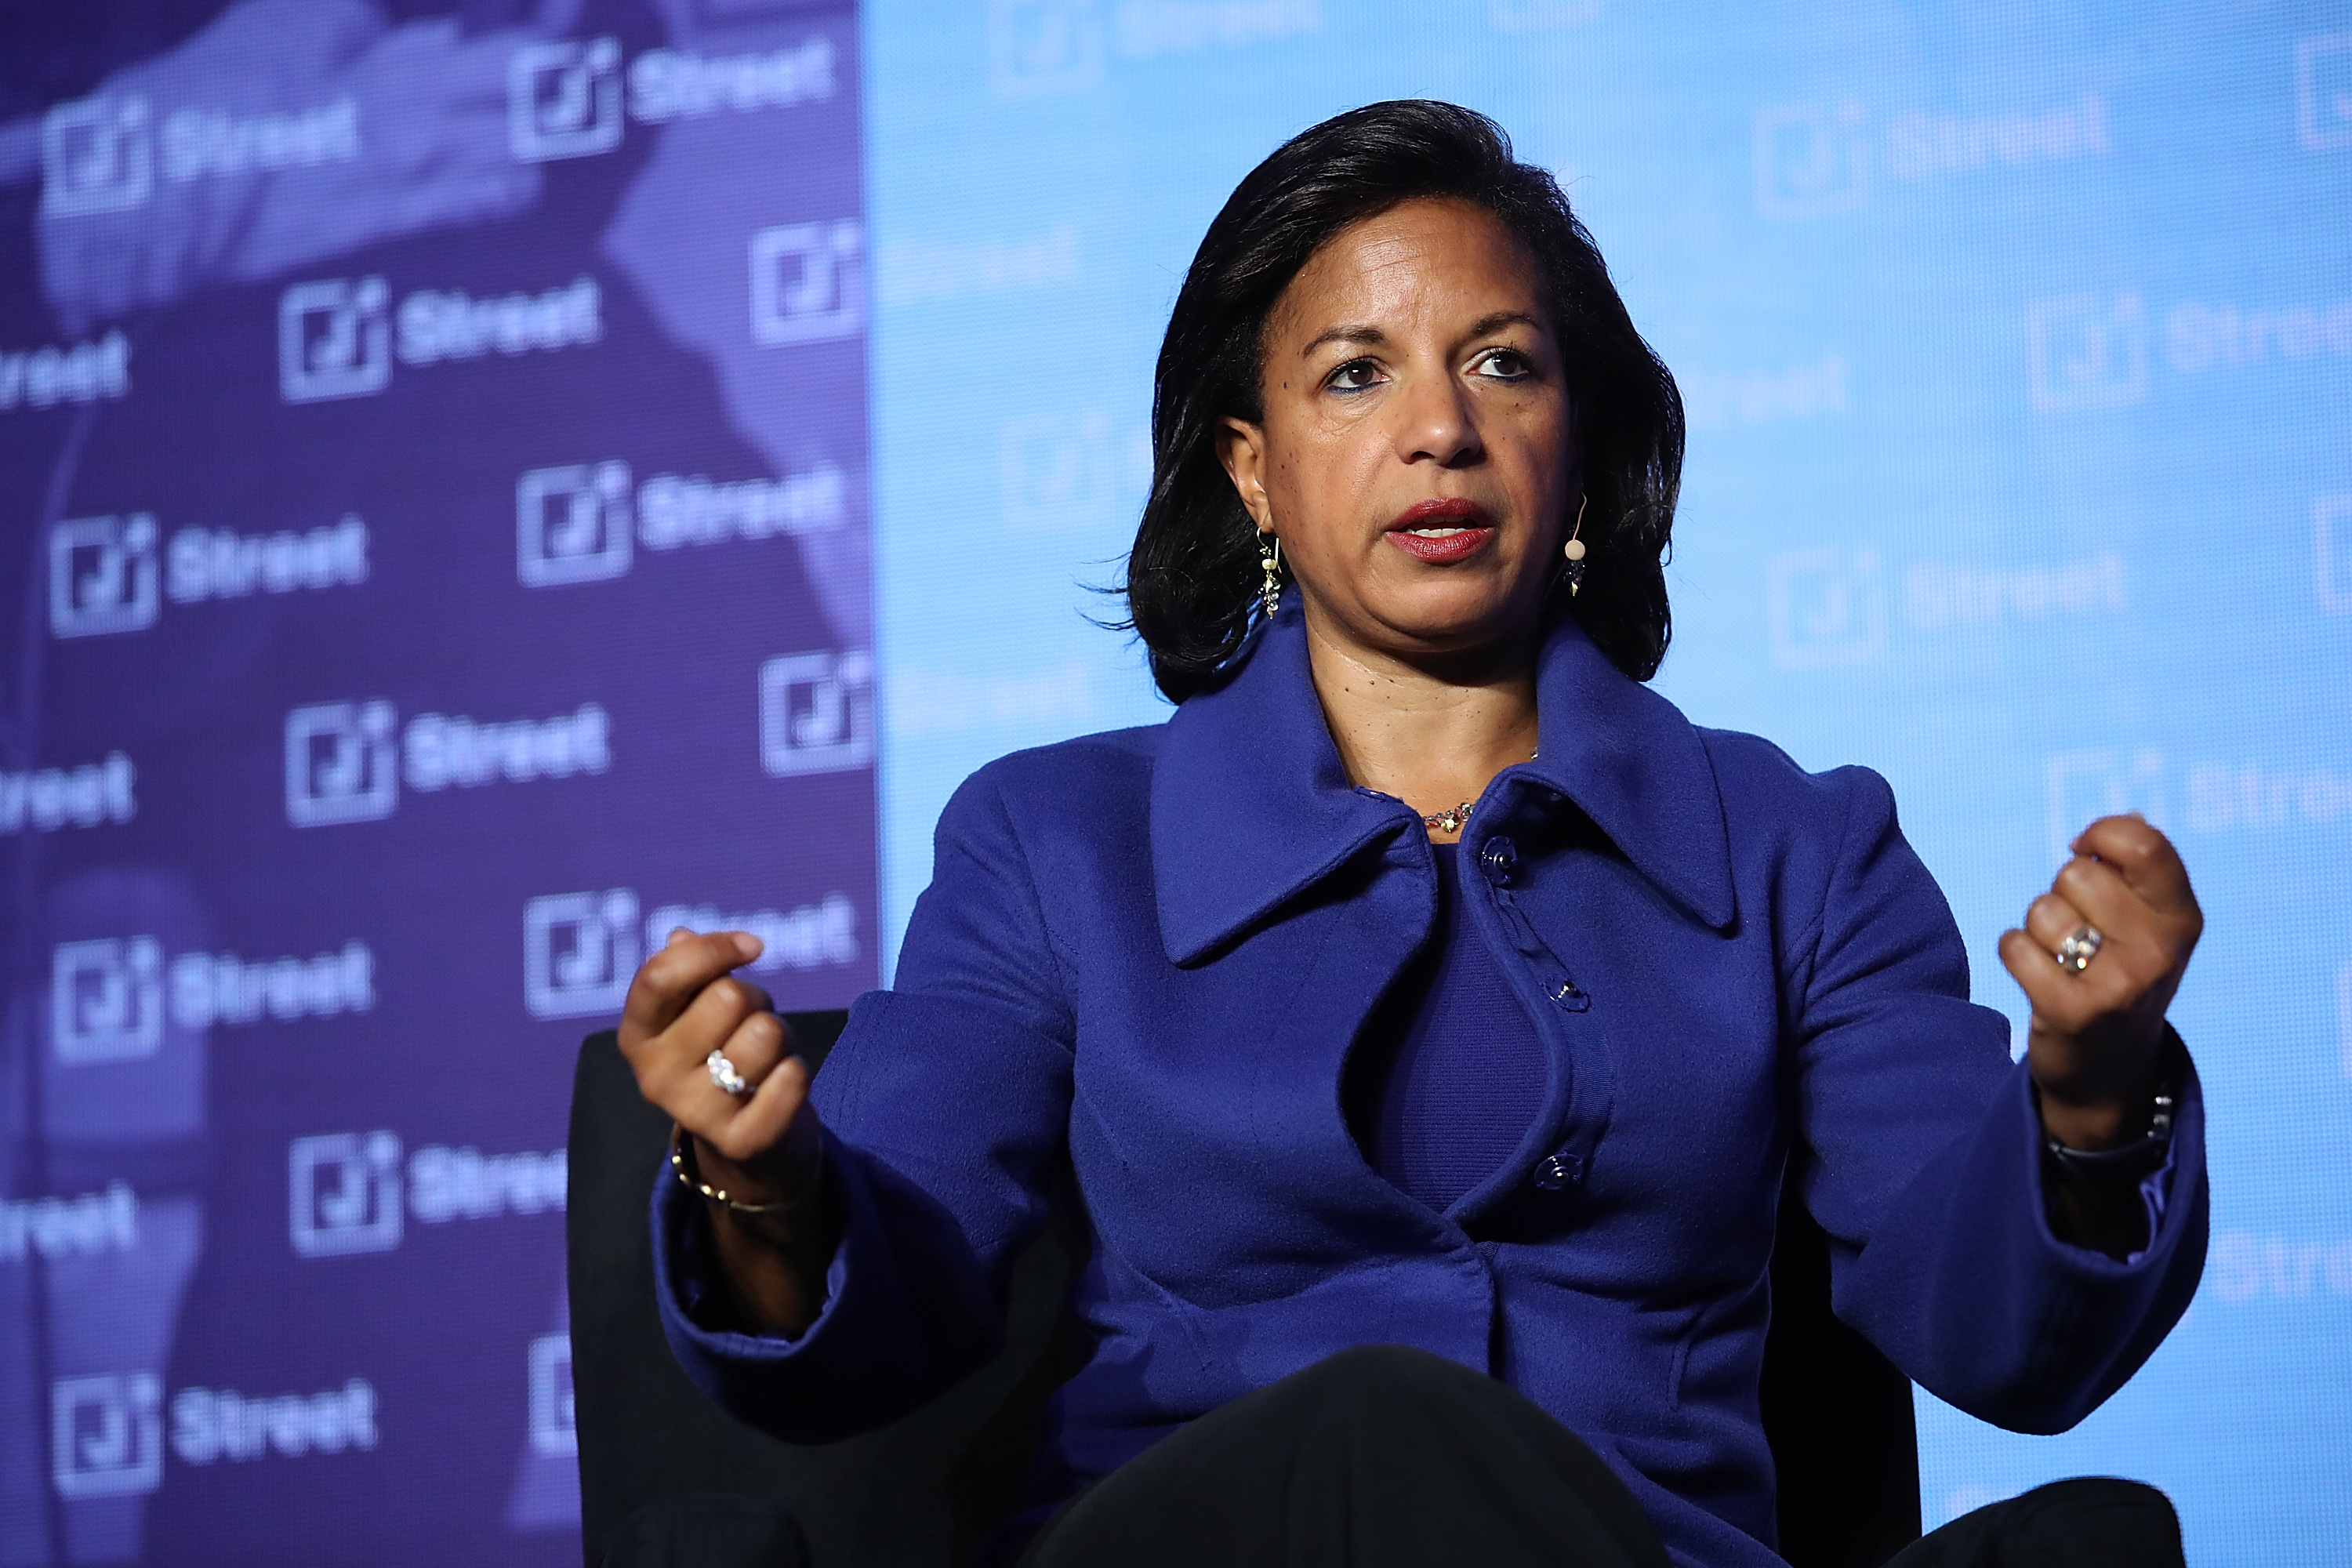 What Susan Rice, Biden's potential secretary of state, has said about China, Russia and the Middle East